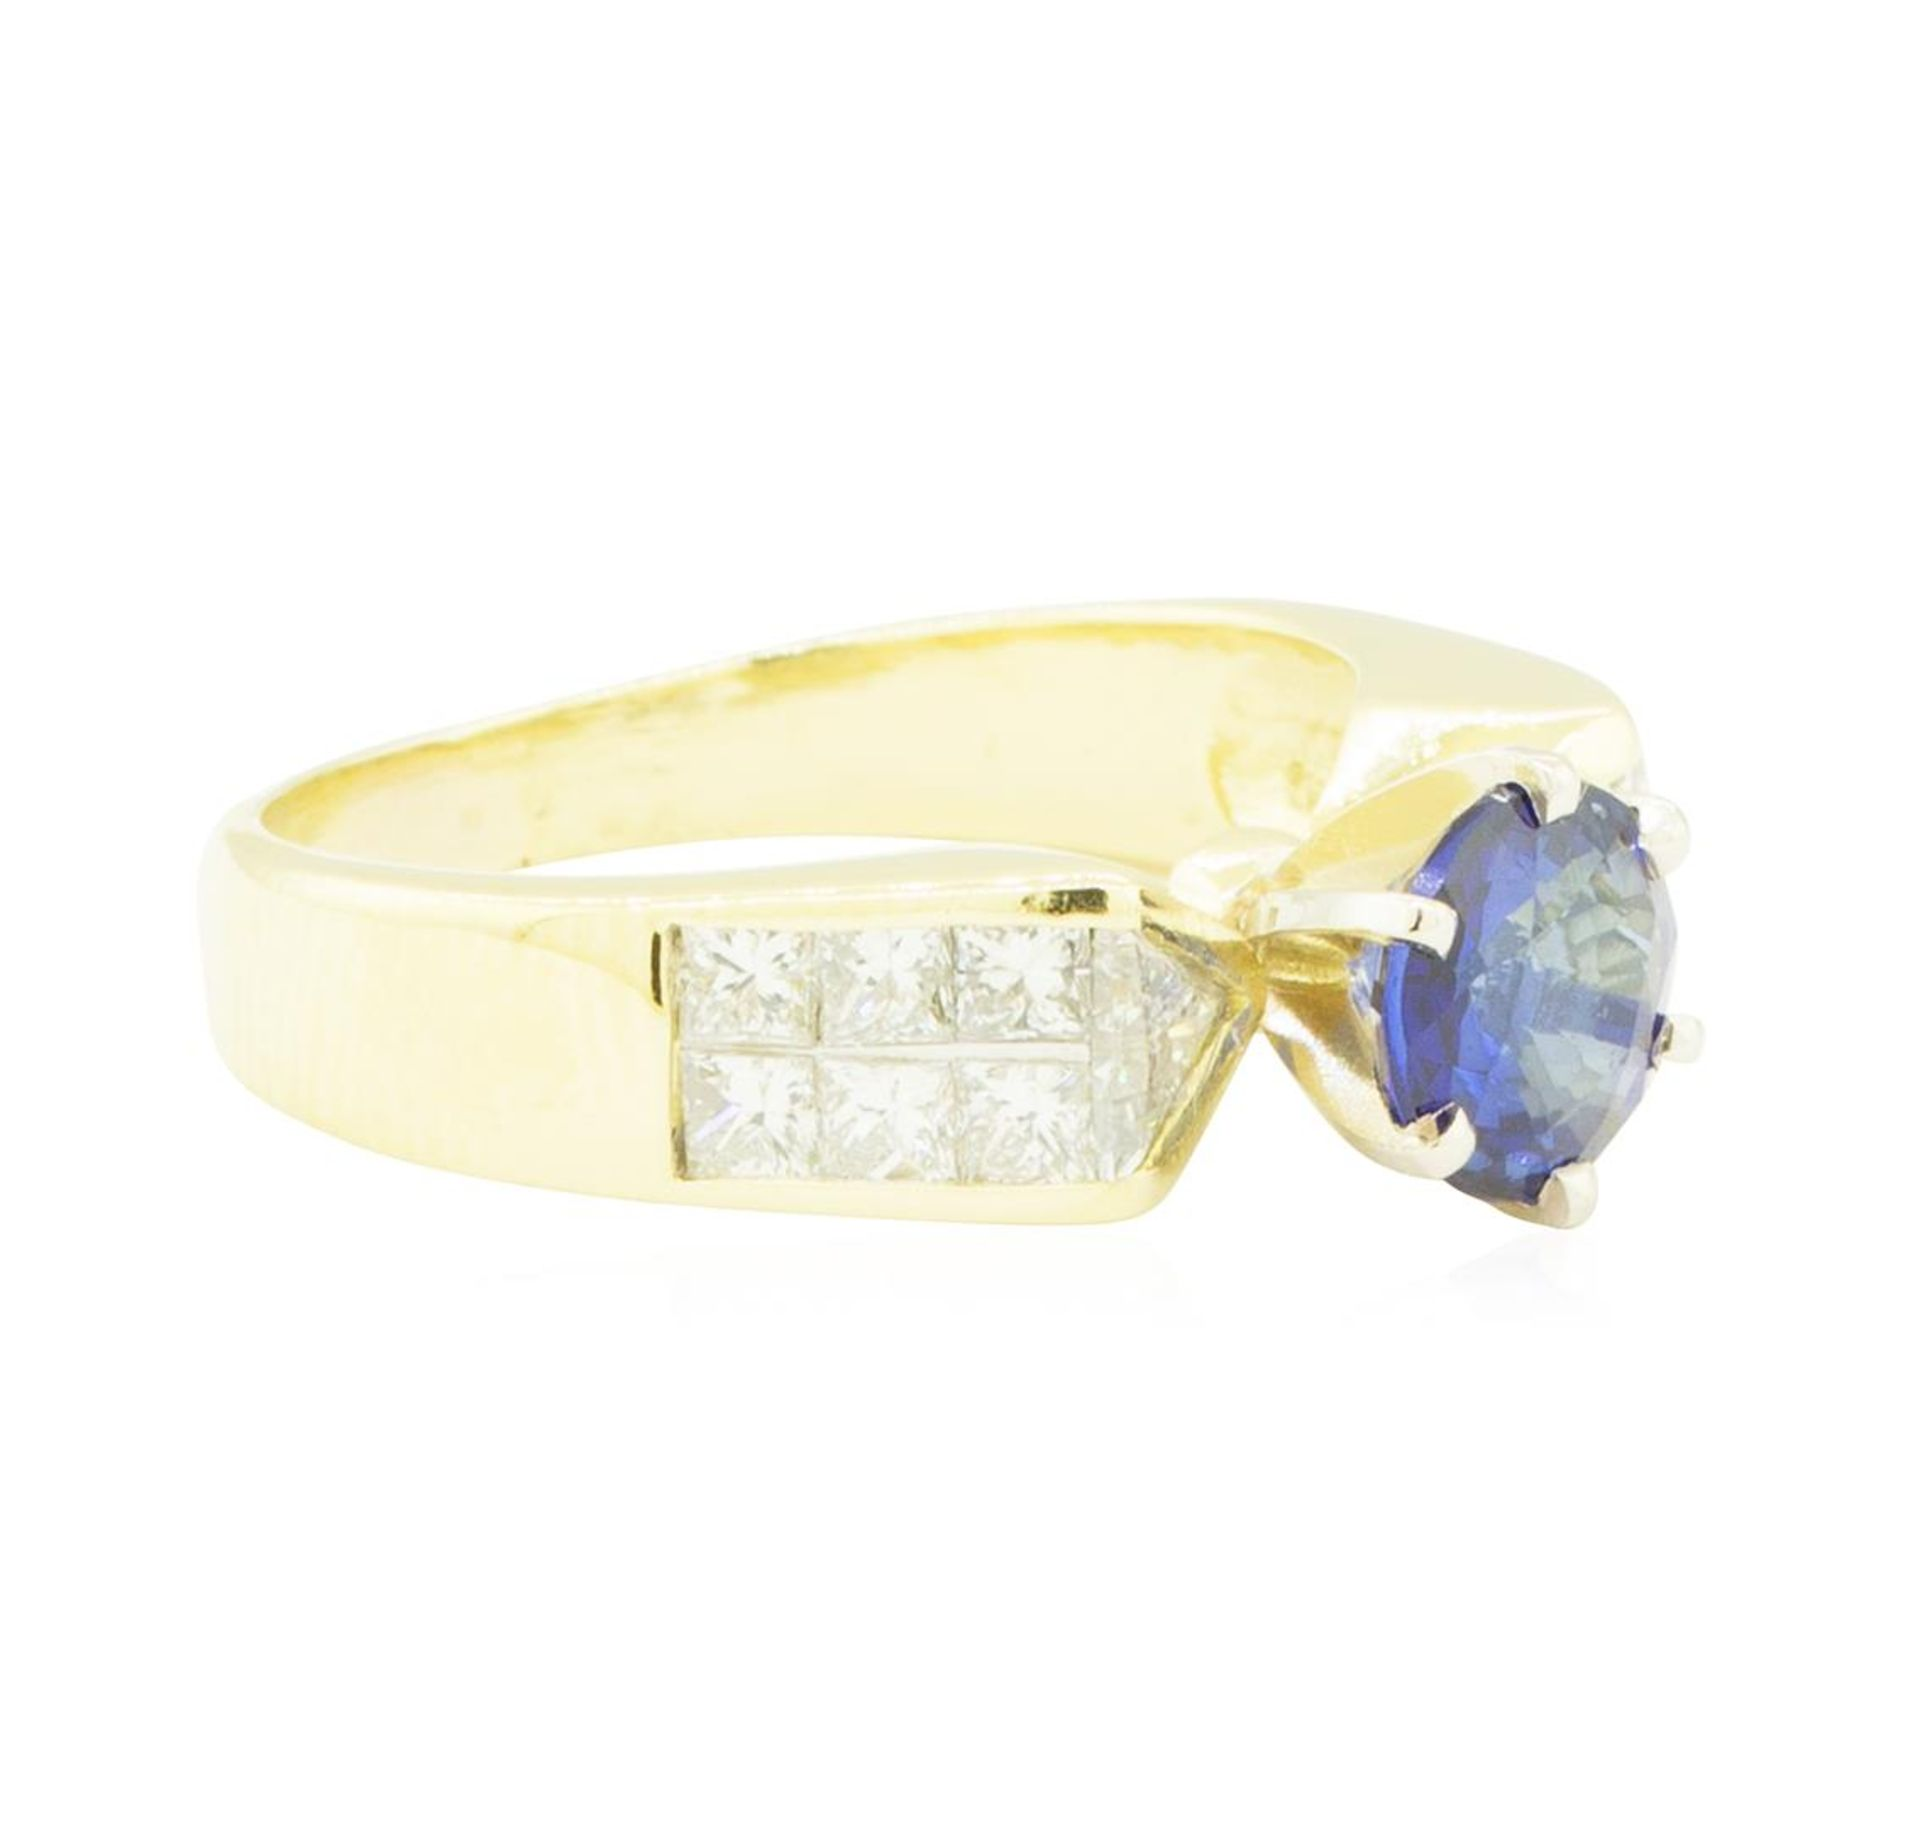 2.20 ctw Blue Sapphire and Diamond Ring - 18KT Yellow Gold